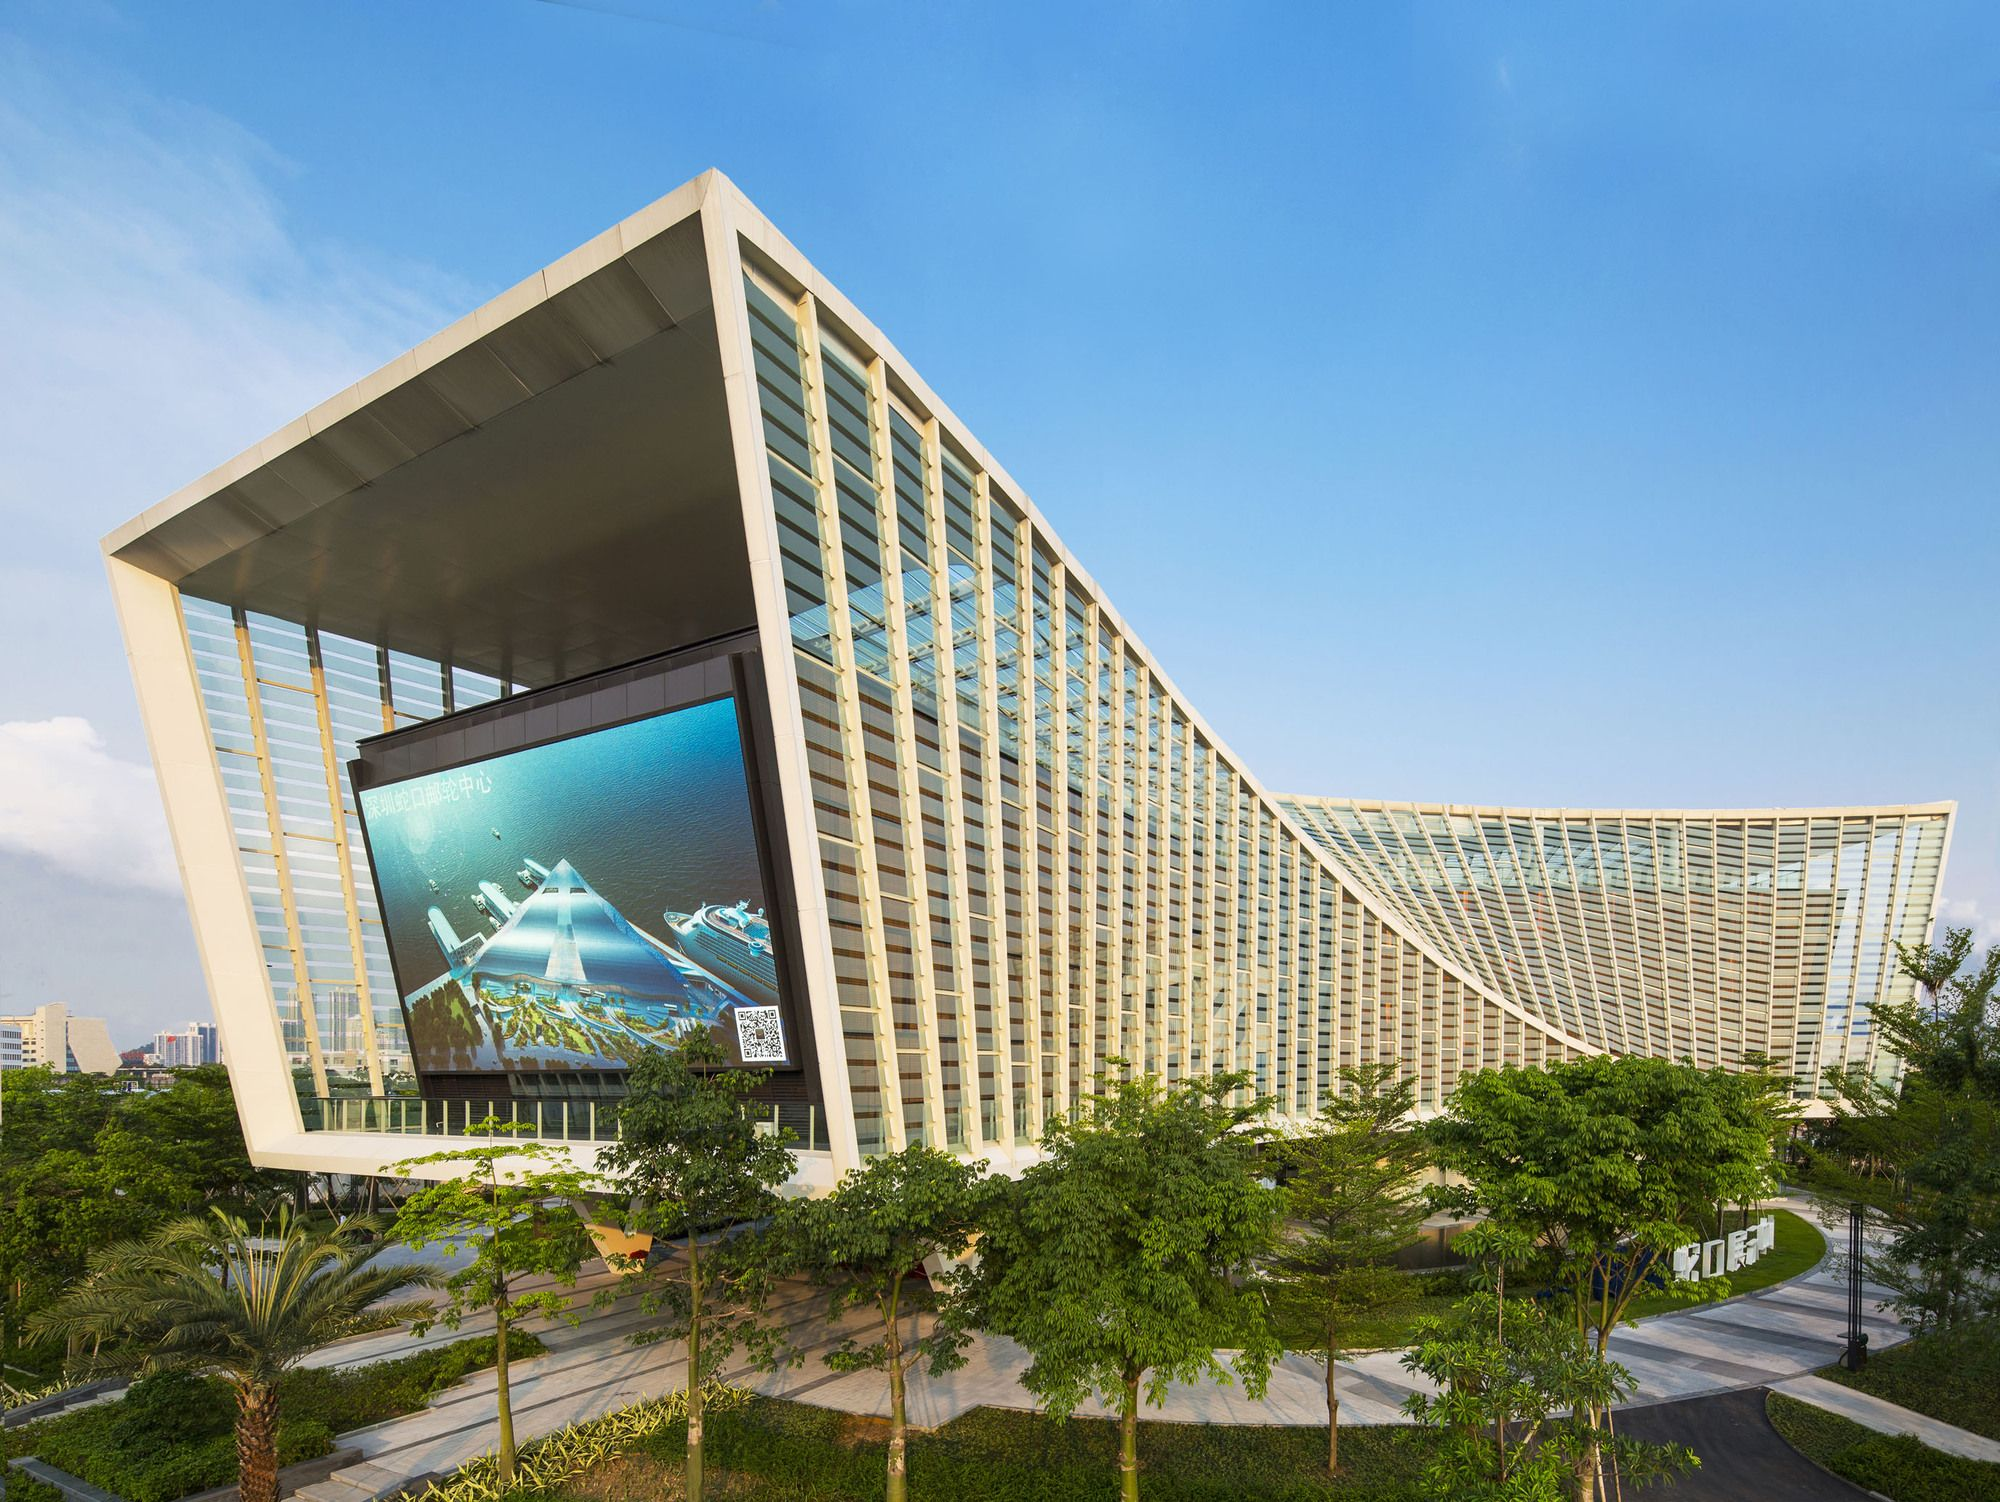 prince bay marketing exhibition centre aecom shenzhen chinaamazing architecturemodern - Modern Architecture Exhibition